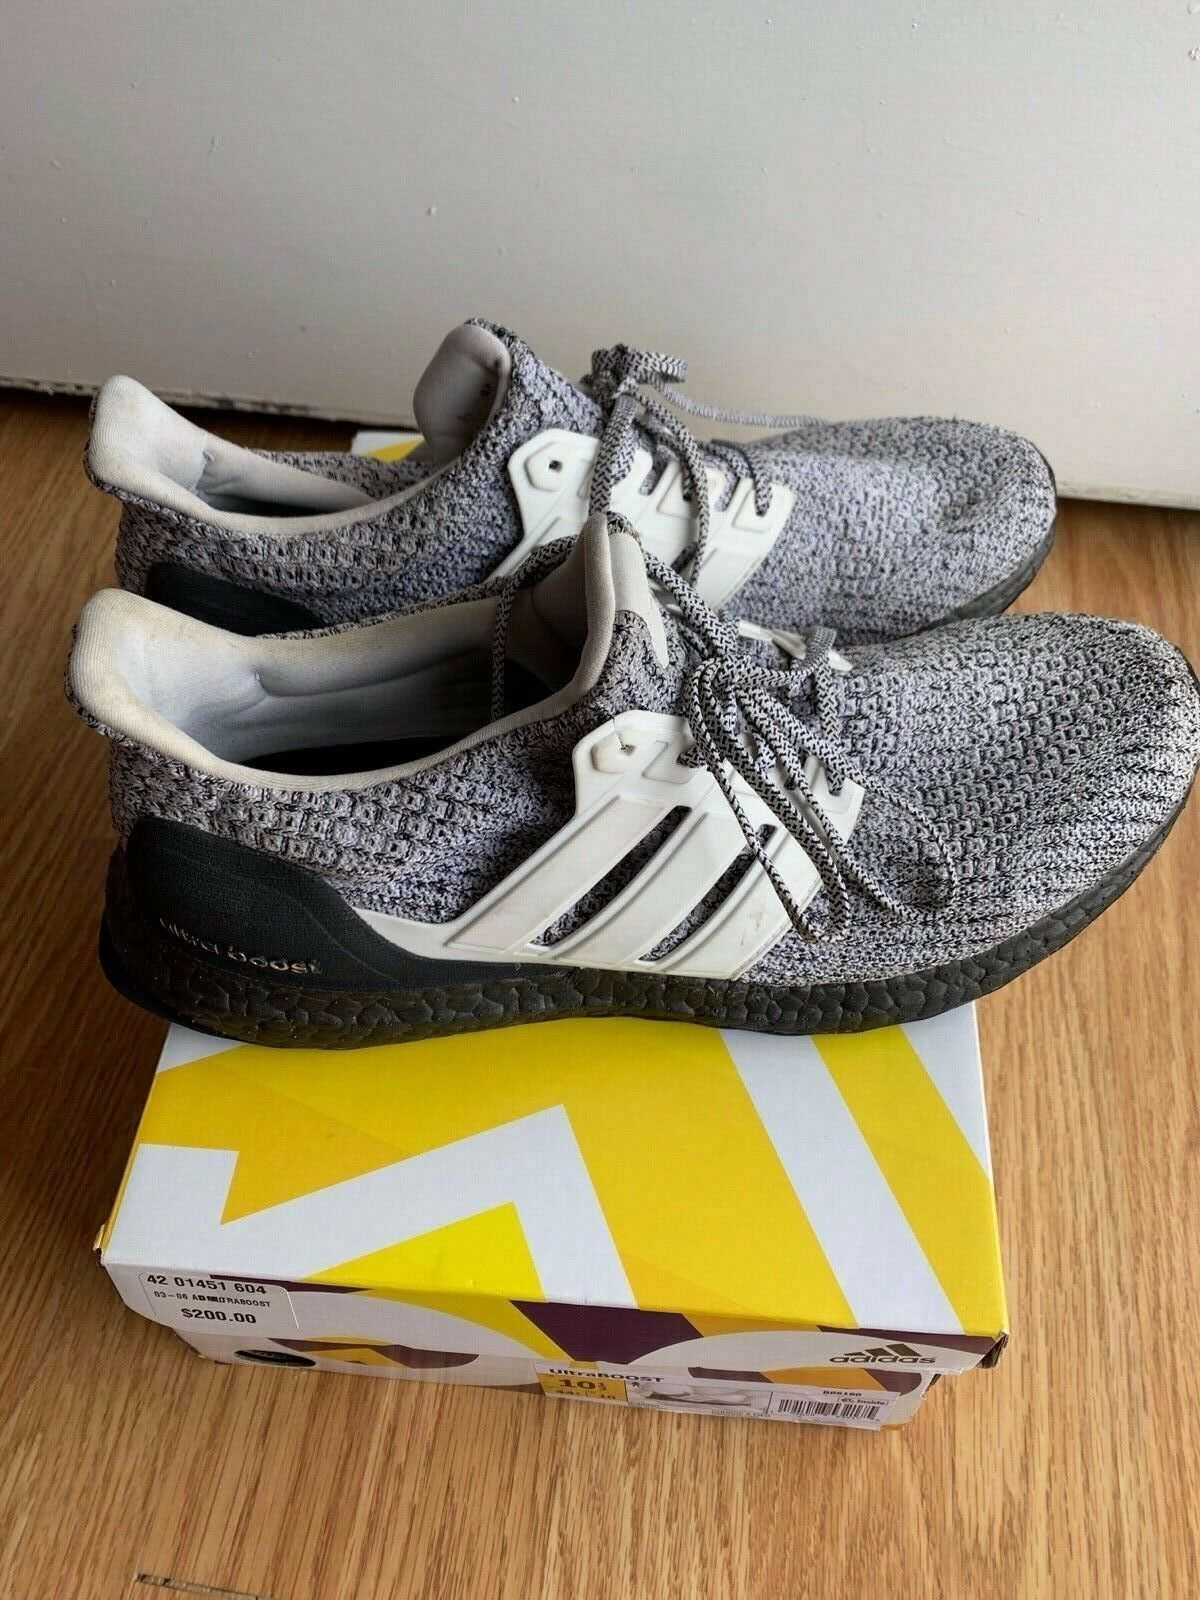 a9699a9190b81 Adidas Ultra BOOST 4.0 Oreo BB6180 Cookies and Cream LTD Men s Size 10.5 US